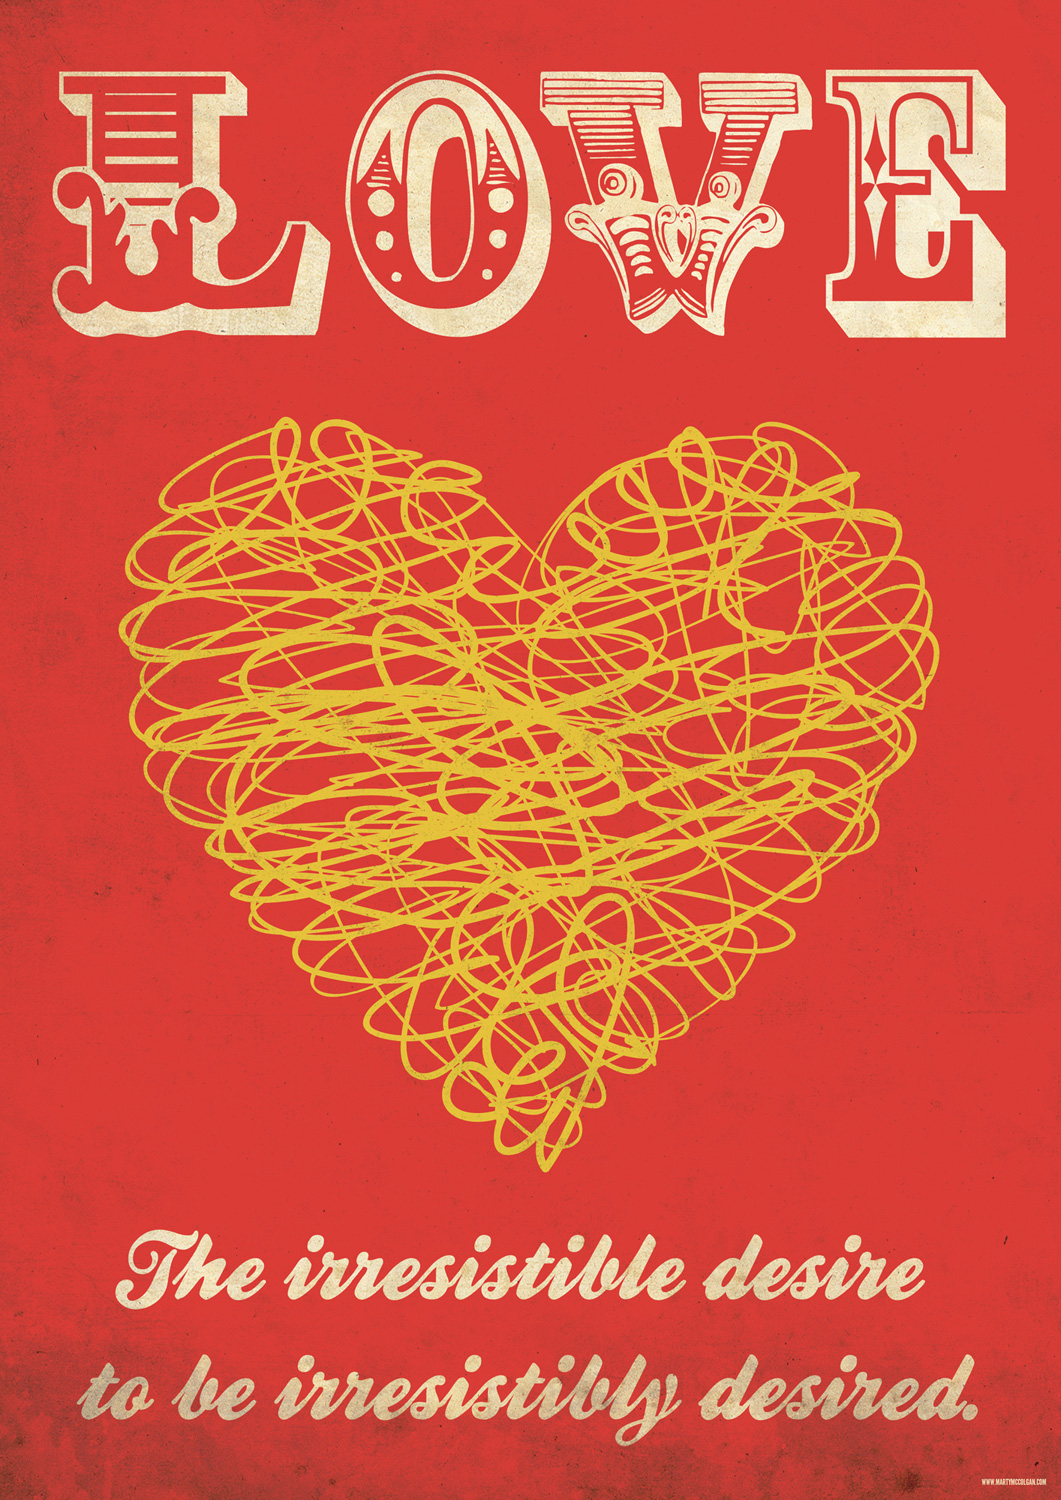 Posters With Quotes About Love : love-poster-design-love-posters-with-quotes.jpg